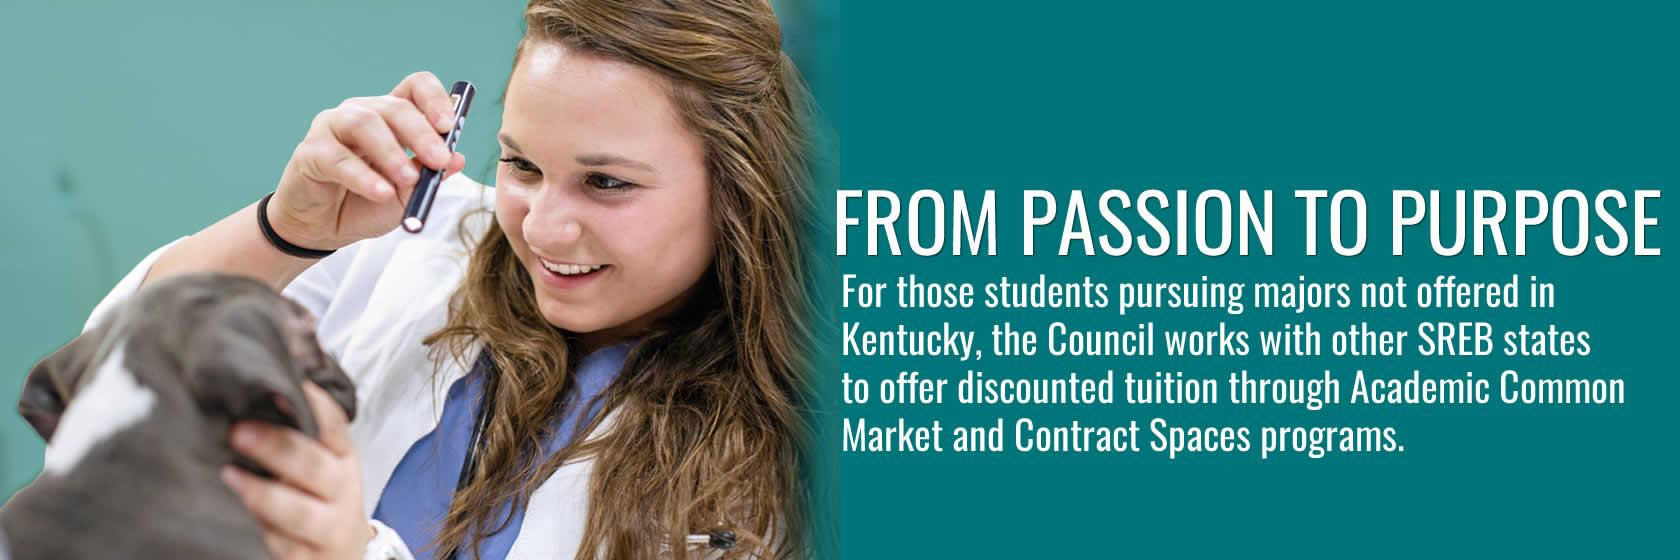 Learn about out-of-state degree opportunities through the Academic Common Market and Contract Spaces programs.